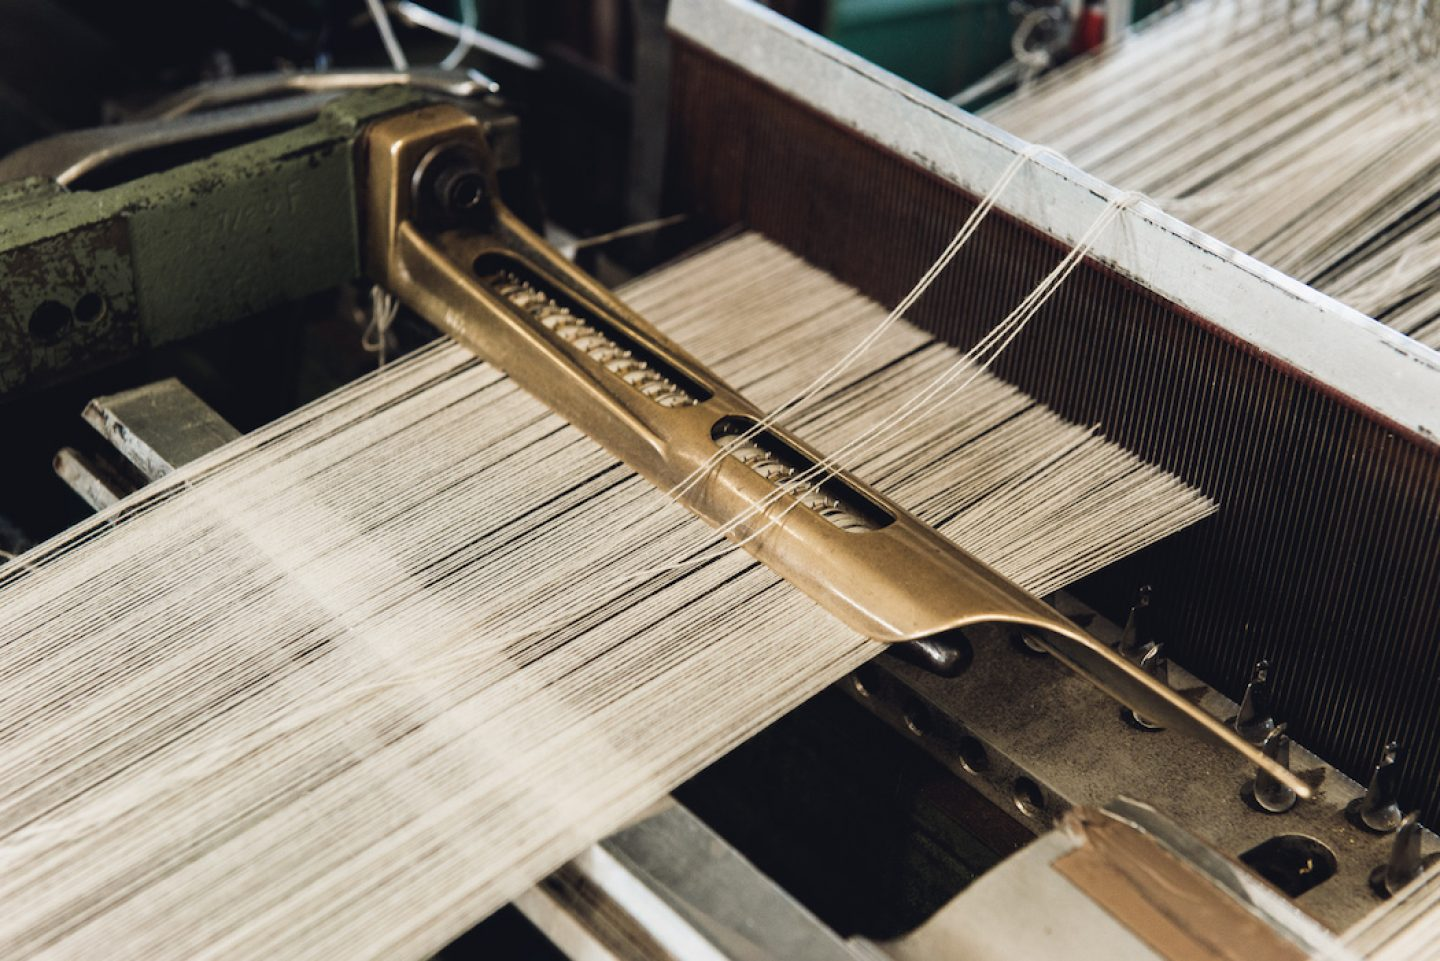 London Cloth Company Revives The Lost Craft Of Loom Weaving - IGNANT